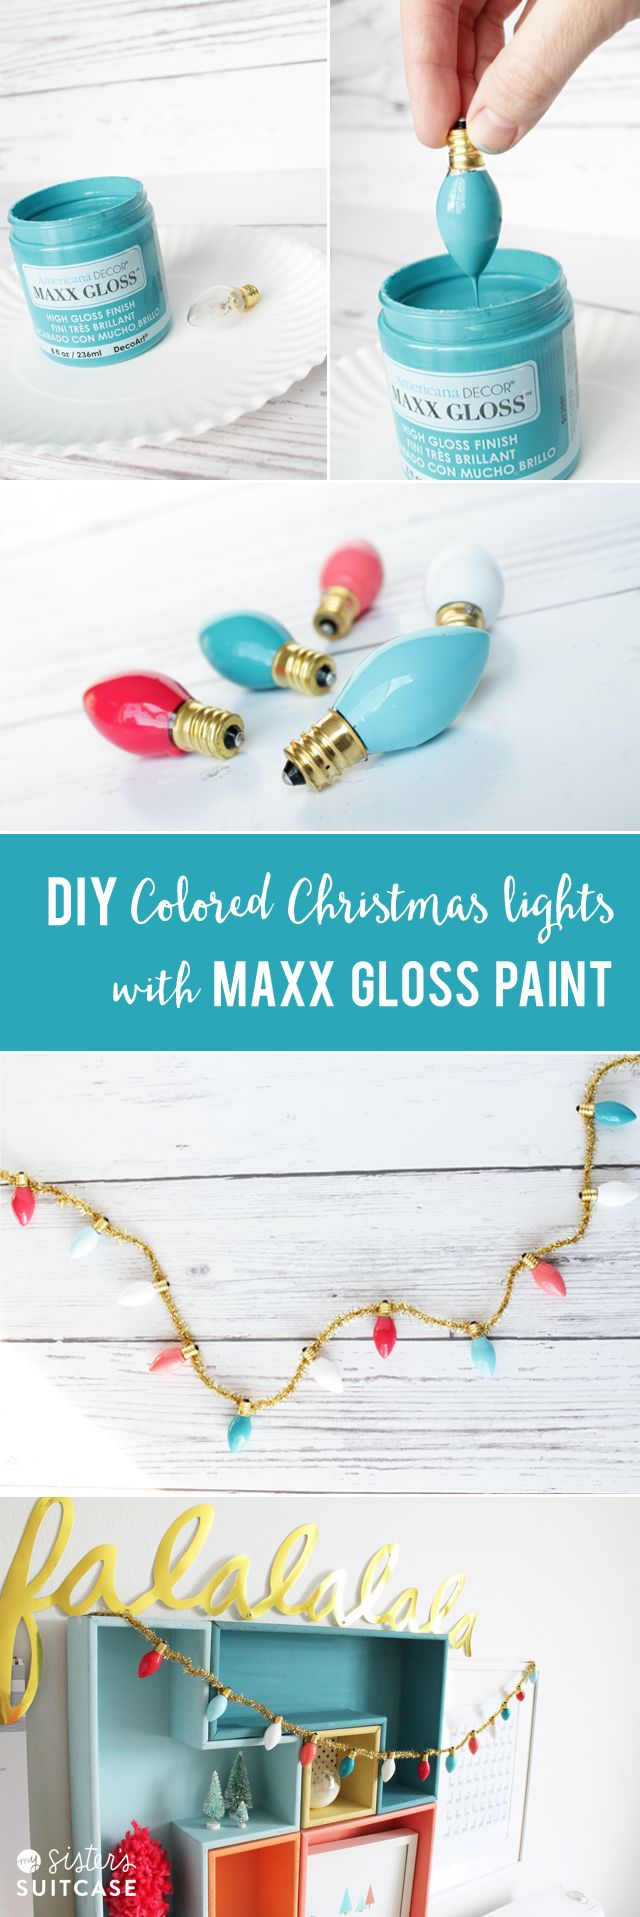 DIY Custom Vintage Christmas Lights tutorial via sisterssuitcaseblog.com #maxxgloss #decoart #decoartprojects @decoart